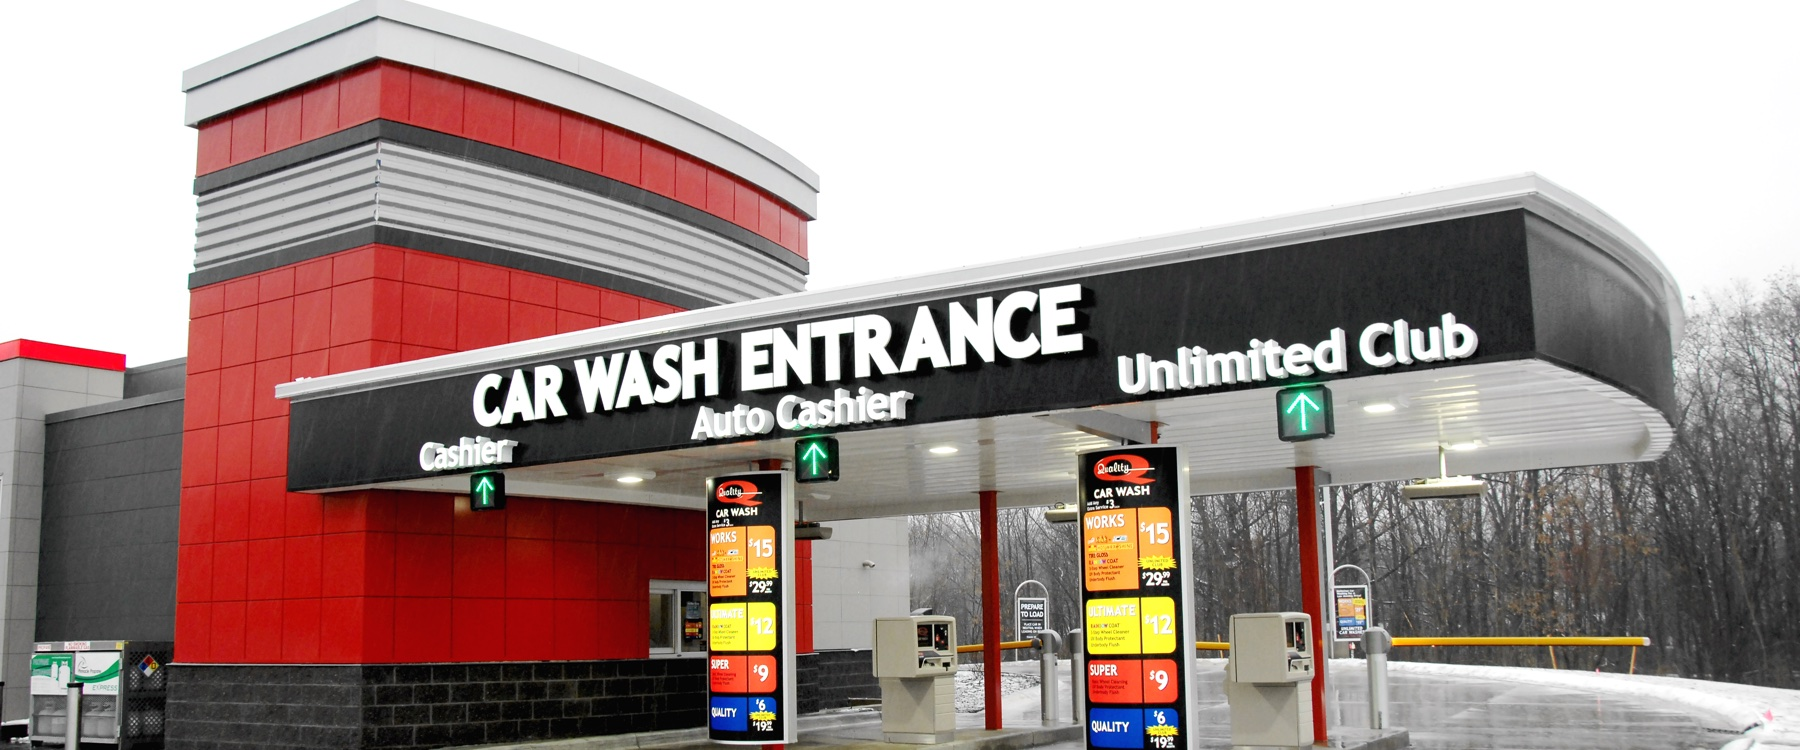 Modern Car Wash Architecture